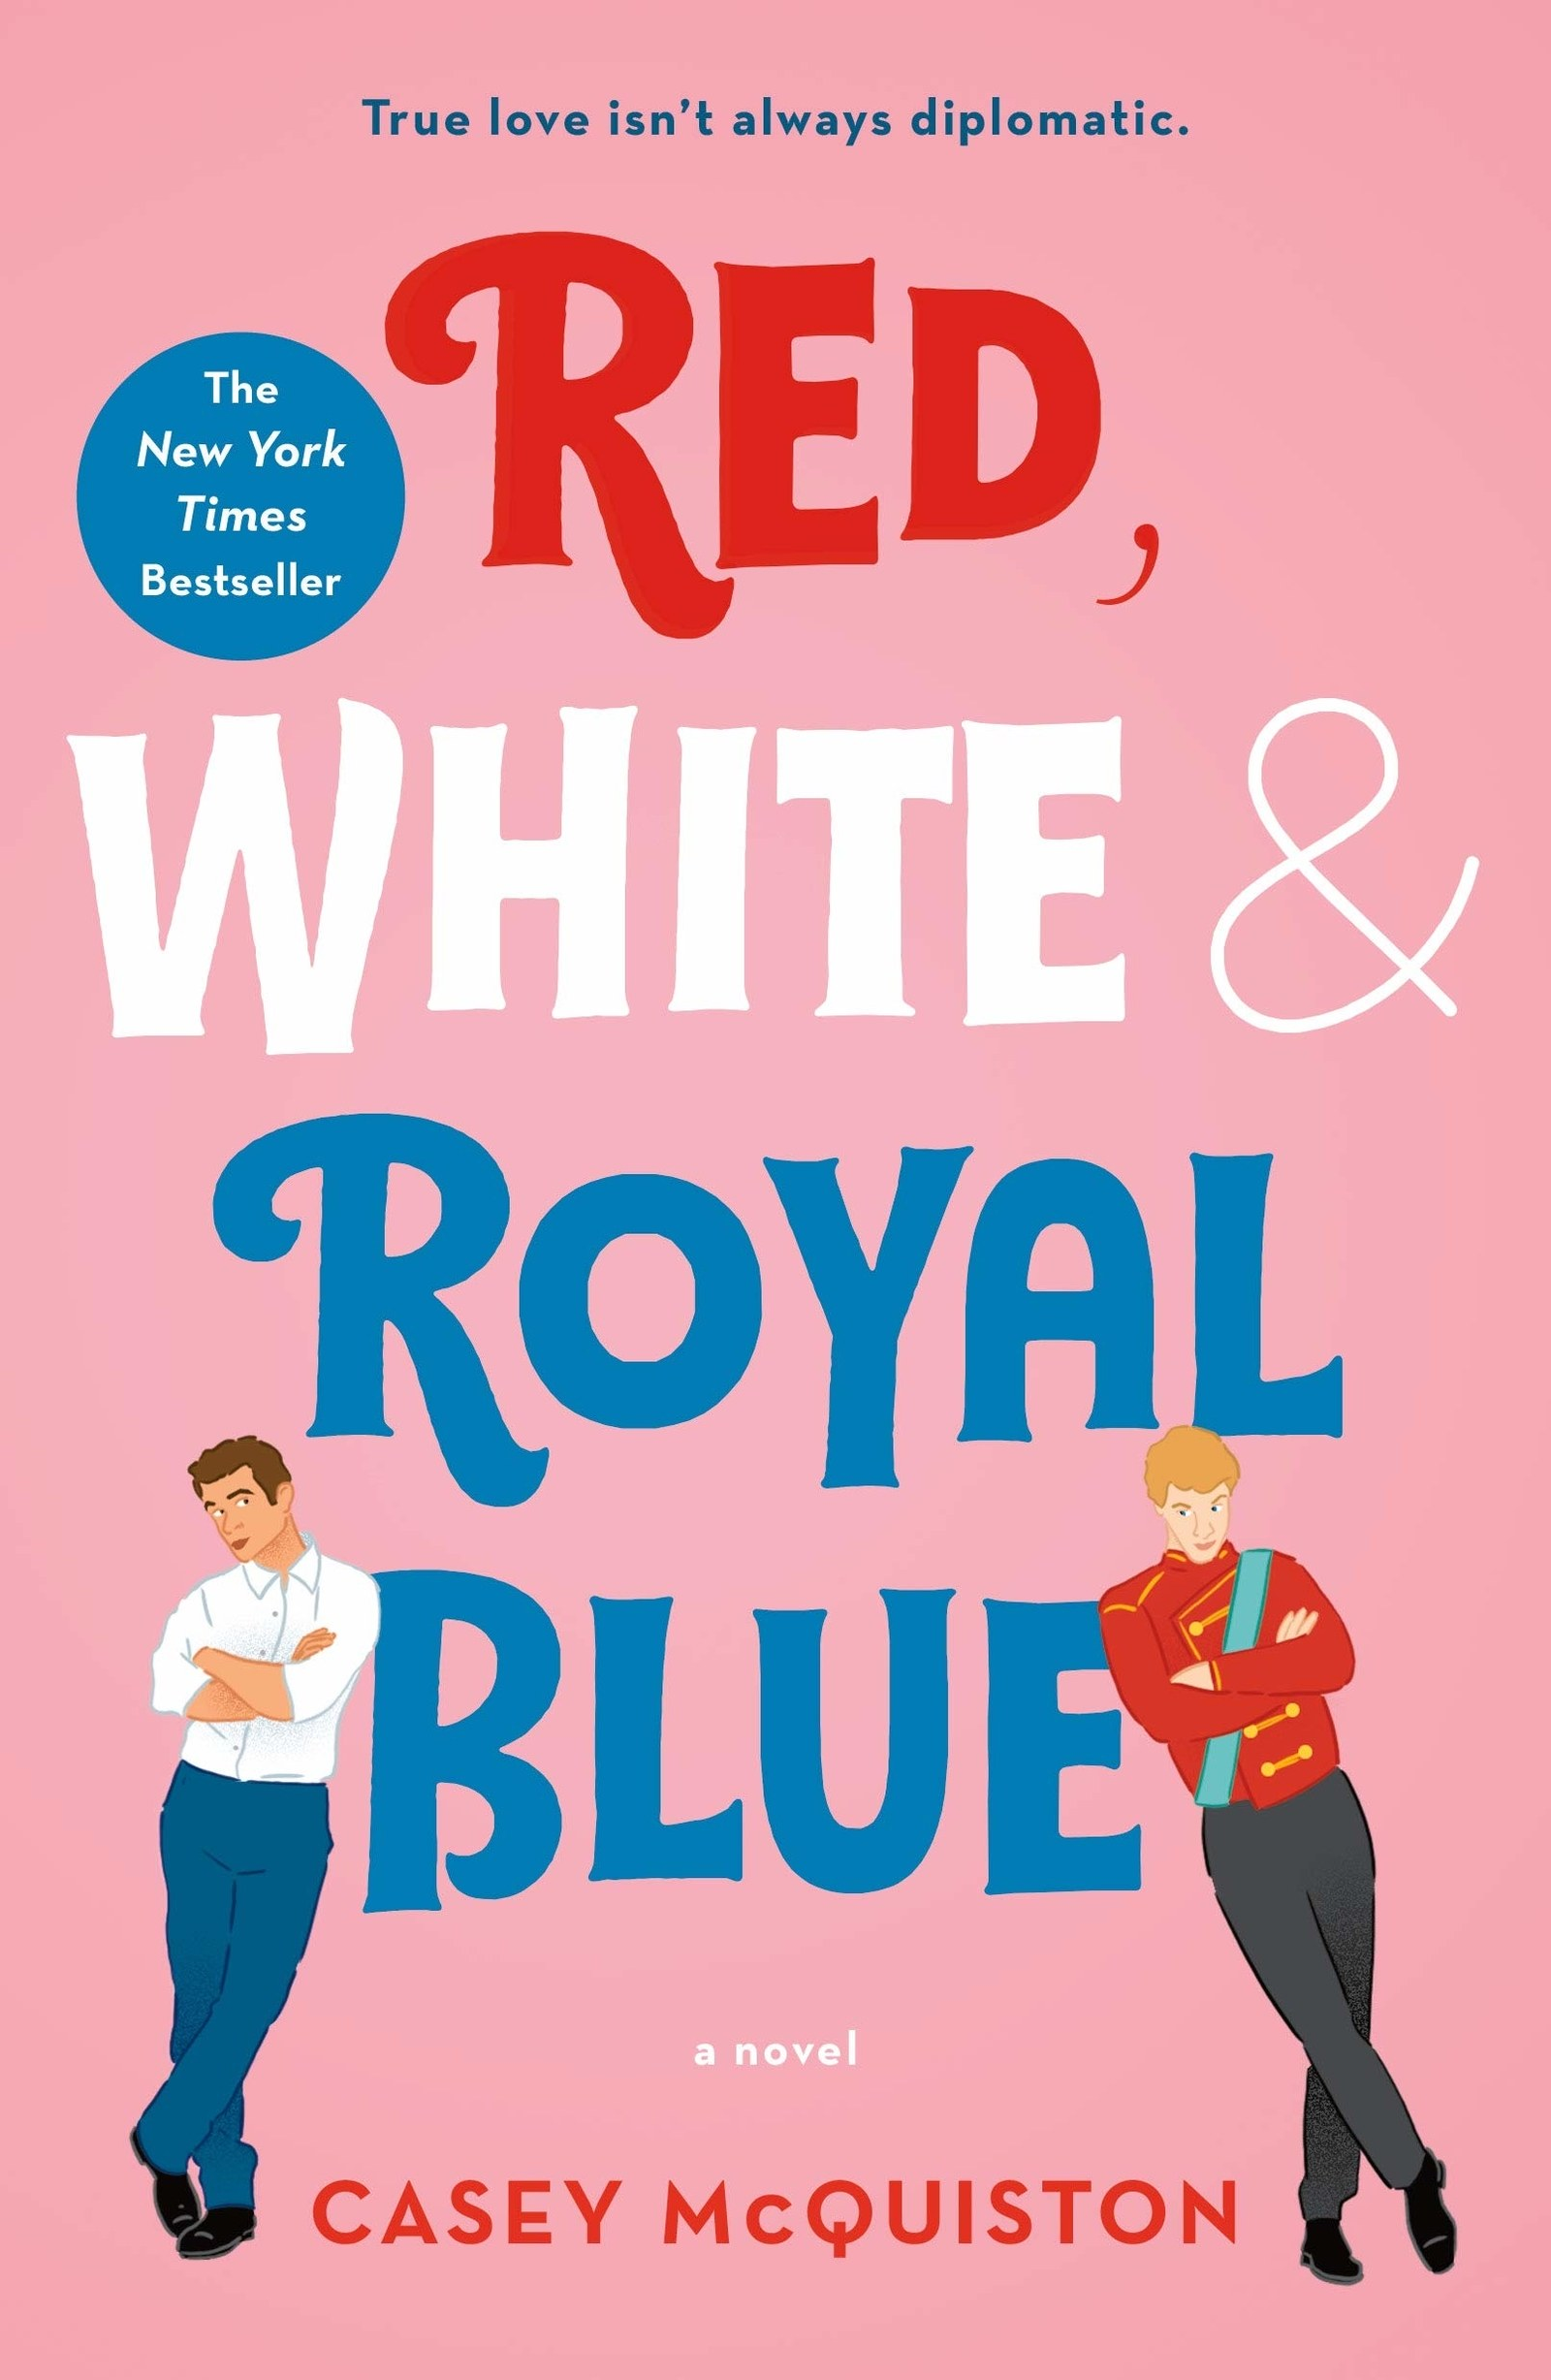 Red White Royal Blue cover